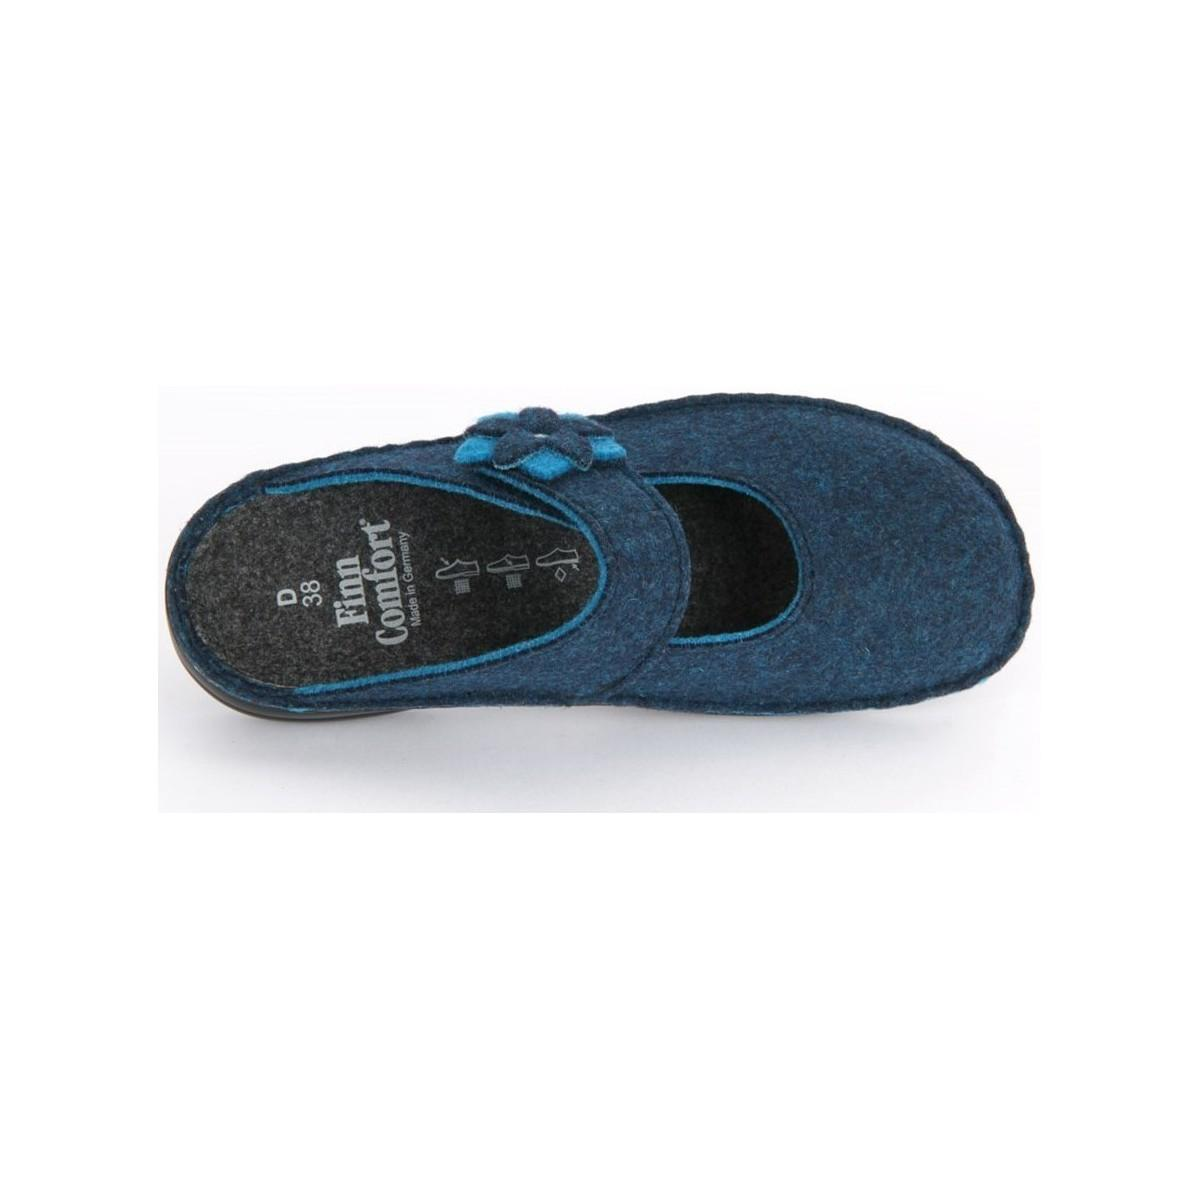 Finn Arlberg Blue Wollfilz women's Clogs (Shoes) in Top Quality For Sale Discount Visit Sale Really Mk862